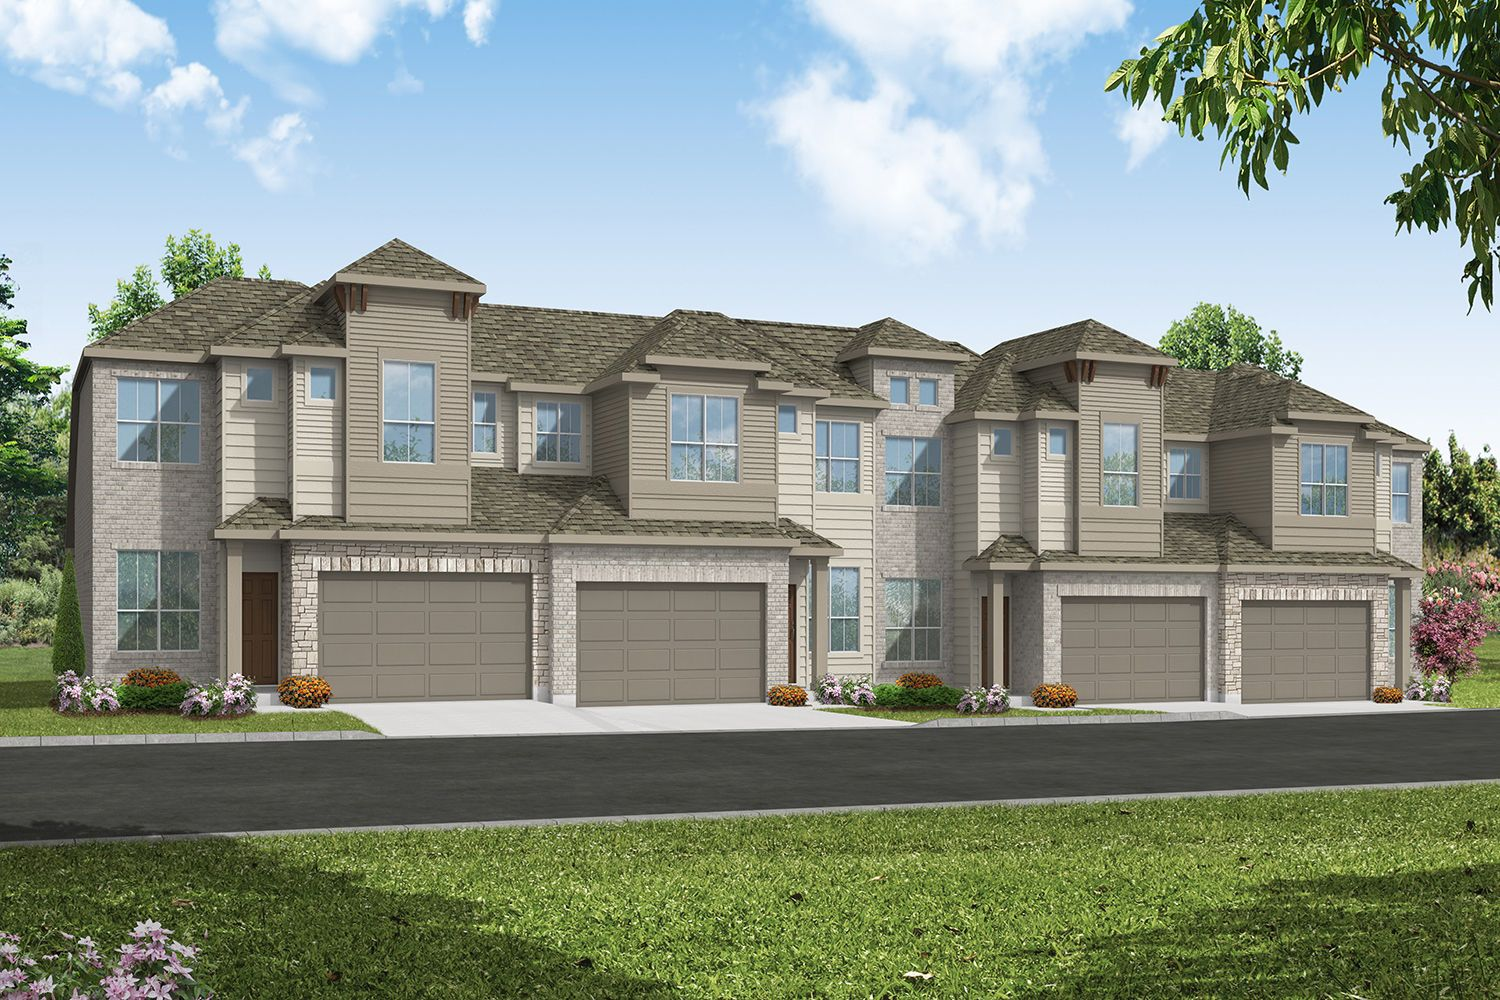 Sonoma Heights Exterior Rendering